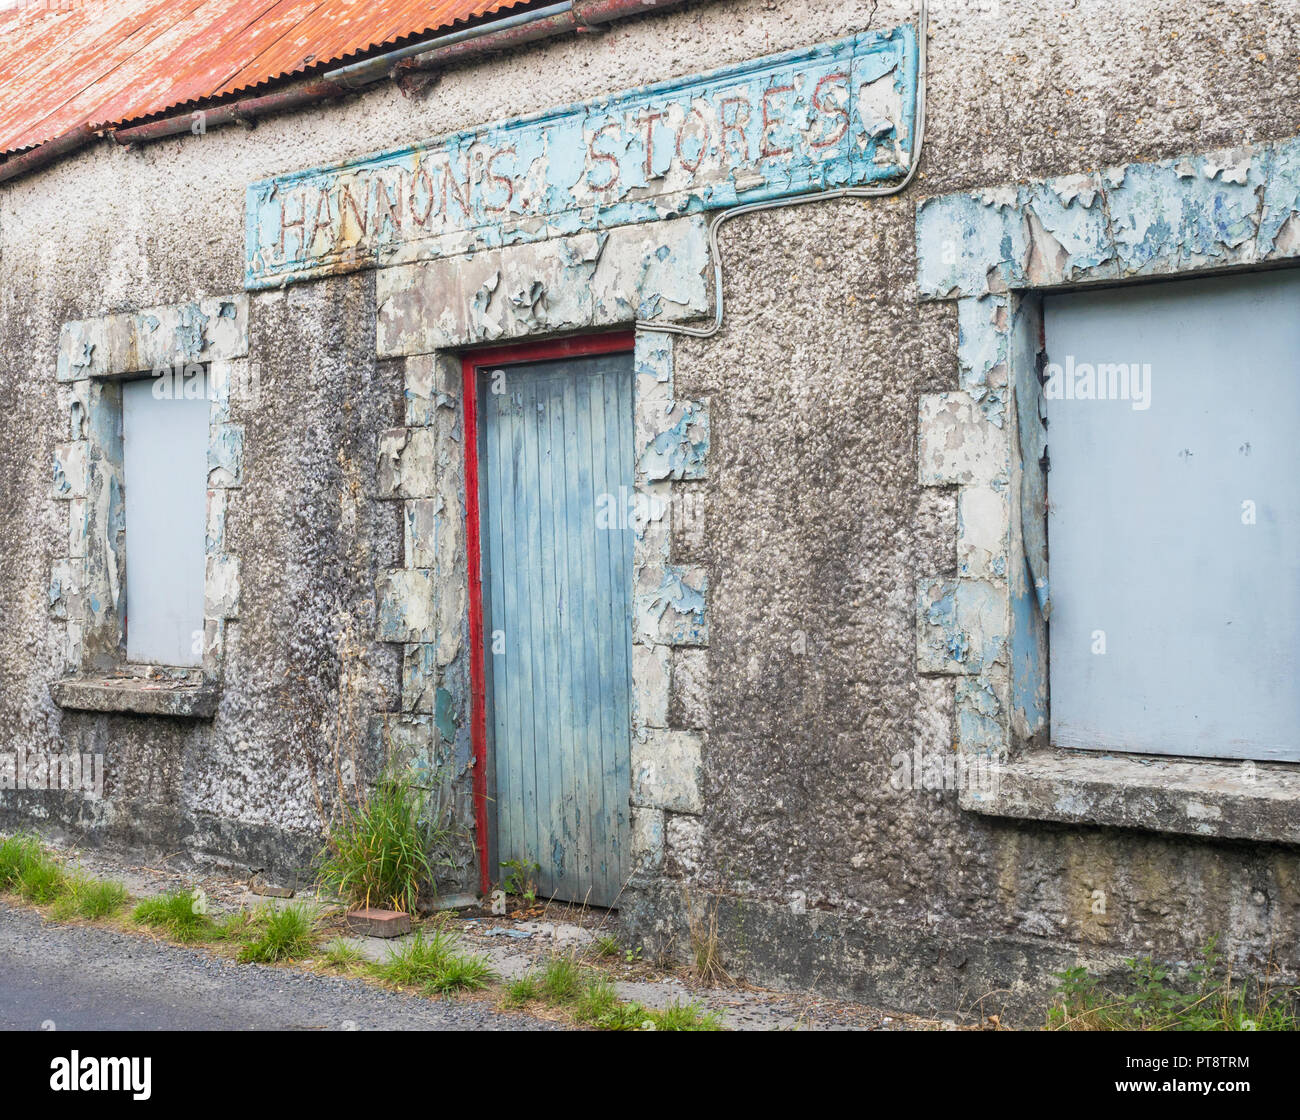 HEADFORD, IRELAND - AUGUST 8, 2018: The abandoned Hannon's Stores building next to a country road near Headford, in County Galway, Ireland. Stock Photo